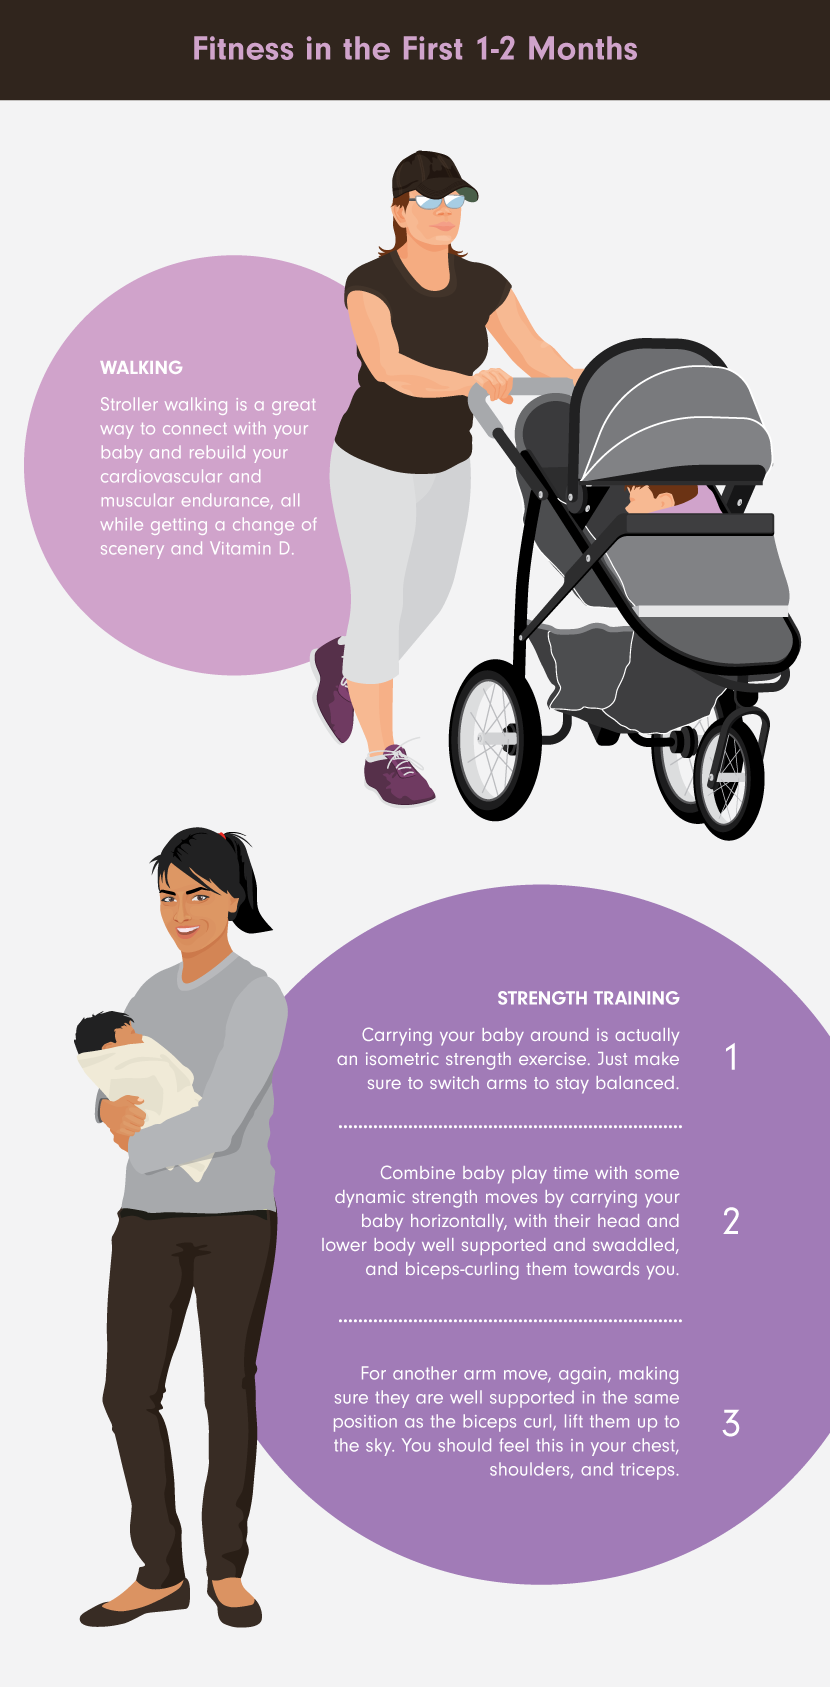 Fitness in the First 1-2 Months - A Guide to Postpartum Fitness